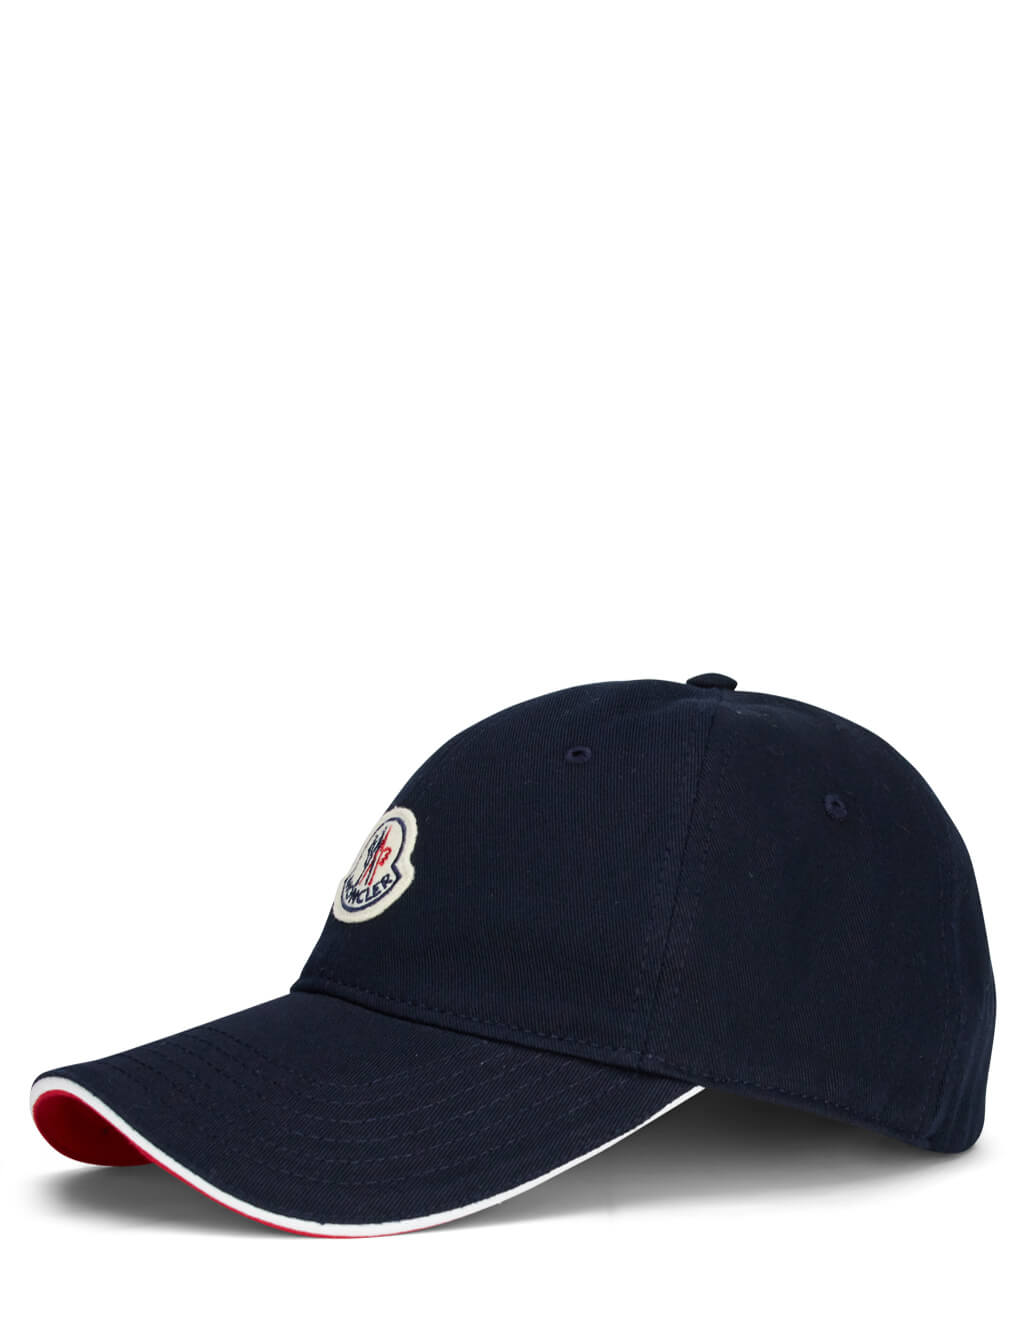 Men's Moncler Logo Baseball Cap with Contrast Brim in Navy Blue - 0913B70700V0090742